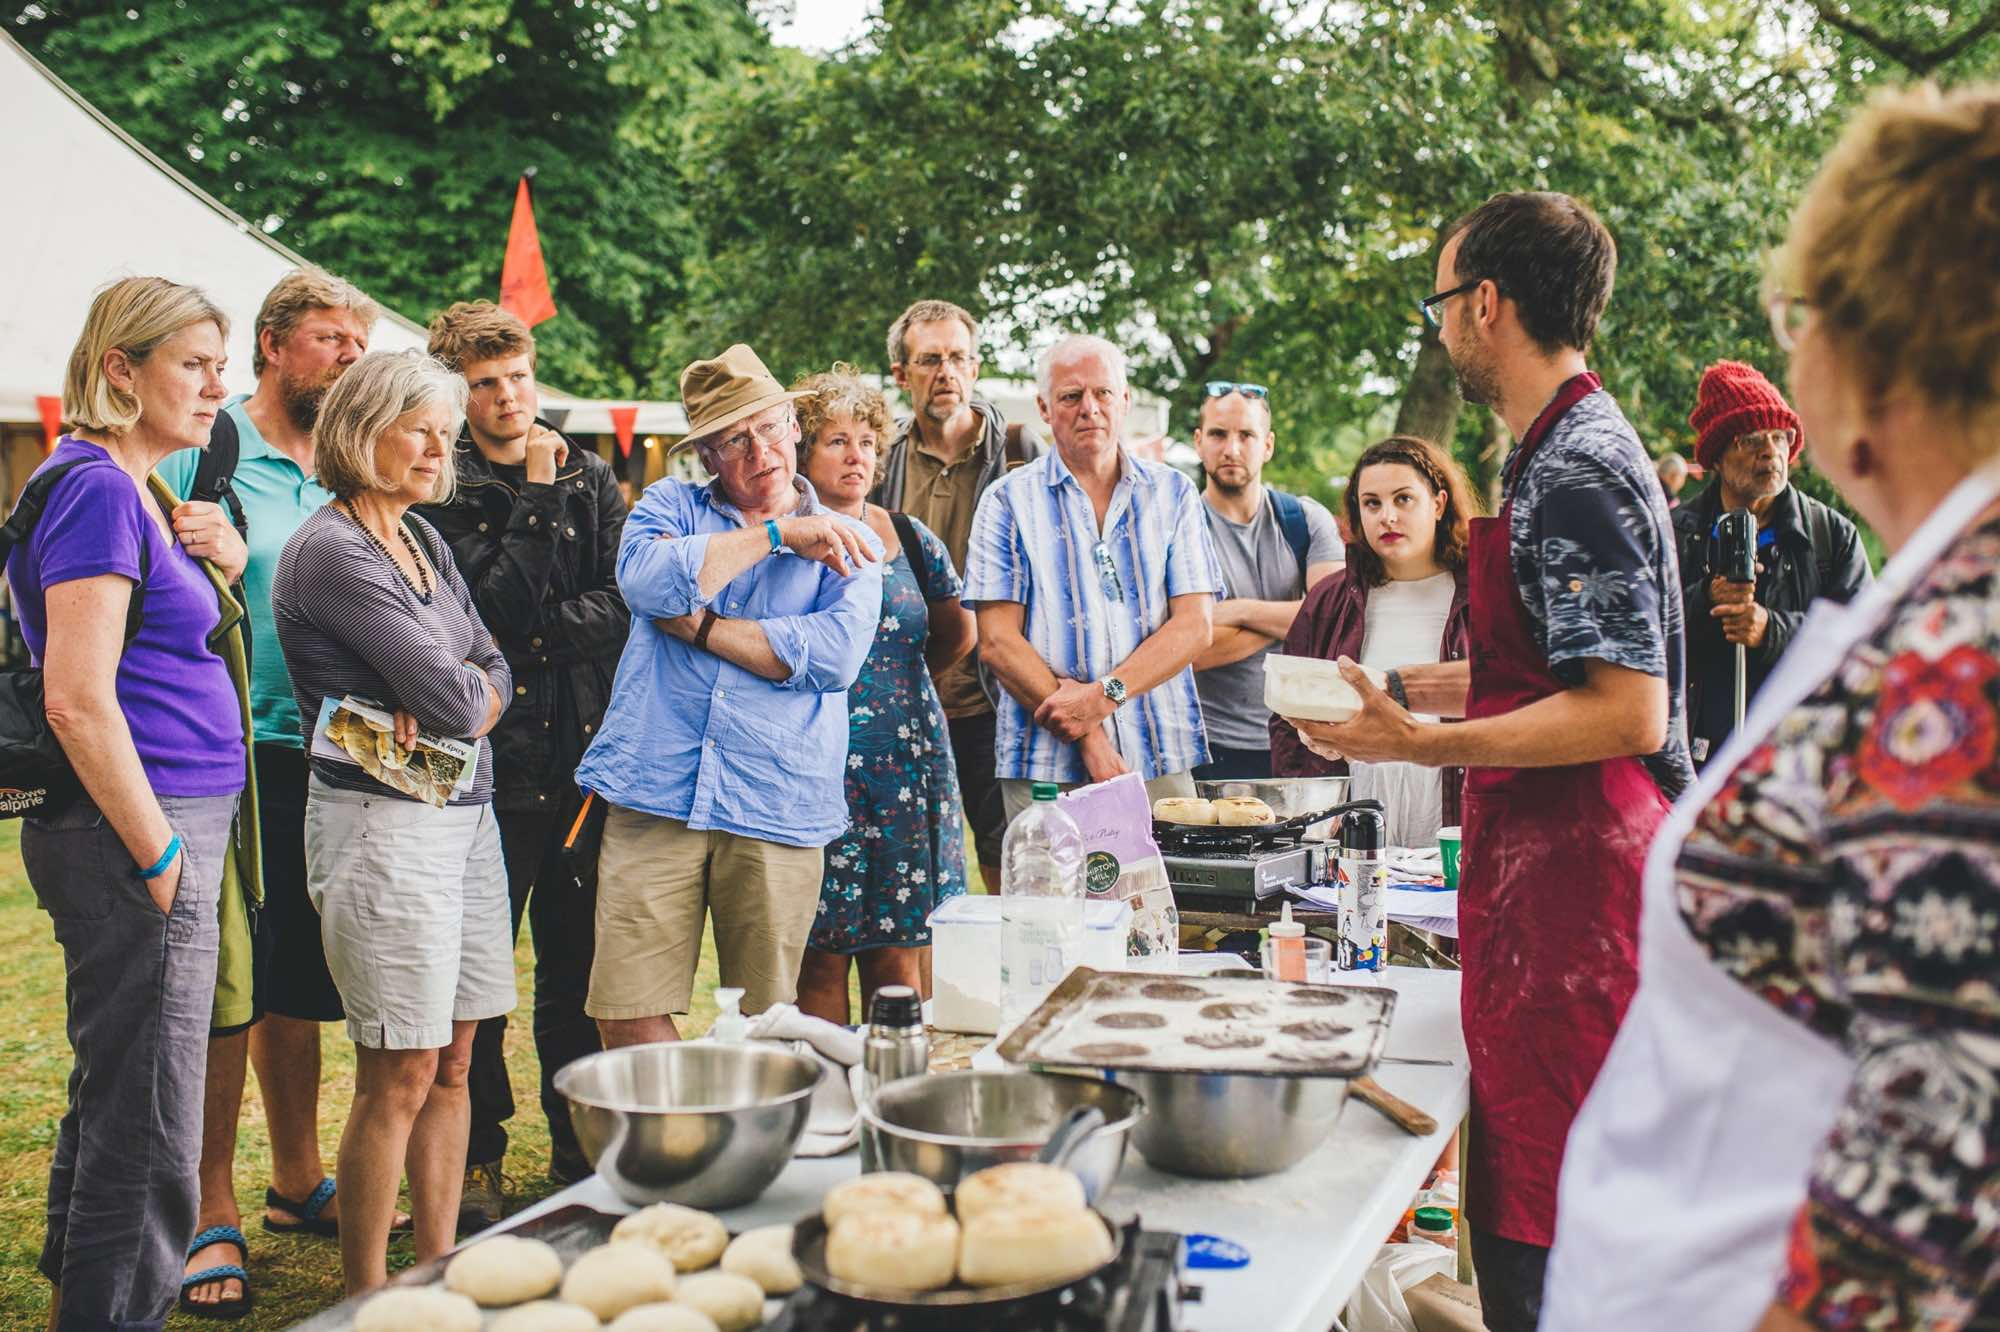 Bread Making at Port Eliot Festival with The Idler Academy. Photograph by Louise Roberts.